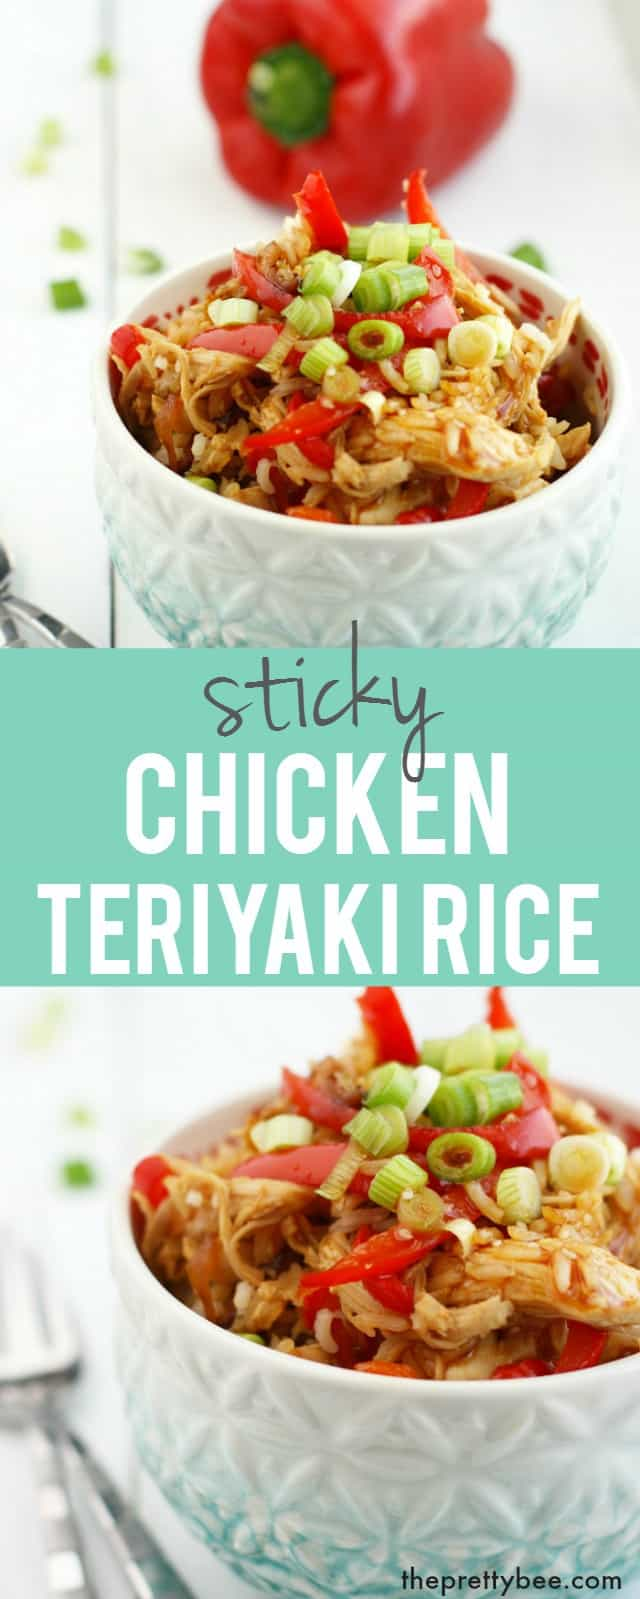 It's the taste of takeout made at home! Sticky chicken teriyaki rice is delicious and easy to make!